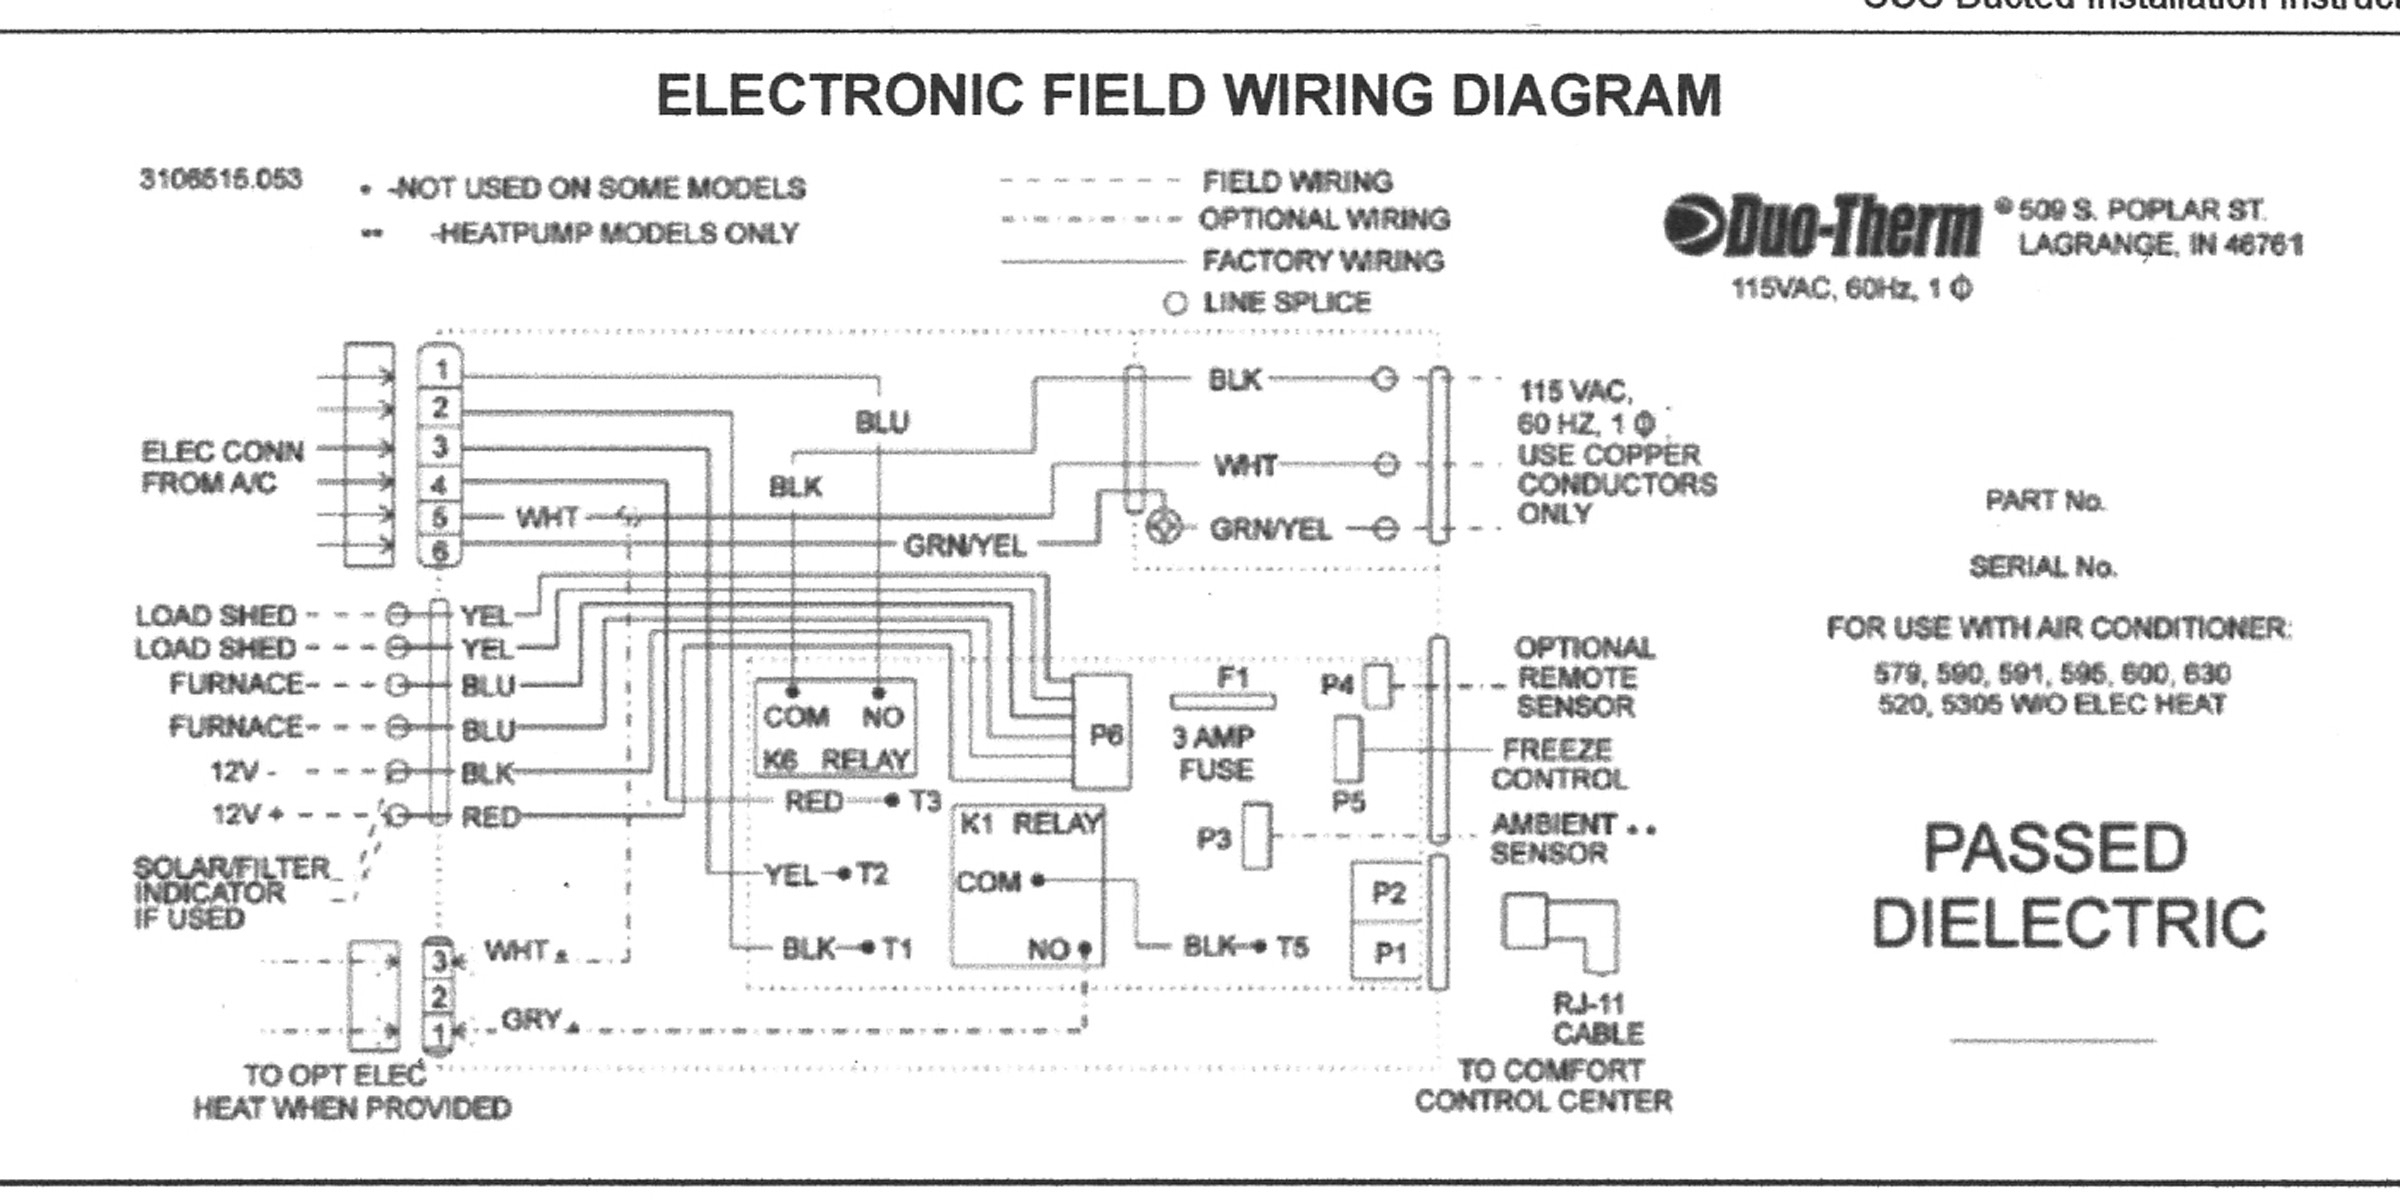 Dometic Analog Thermostat Wiring Diagram | Wiring Diagram - Dometic Thermostat Wiring Diagram